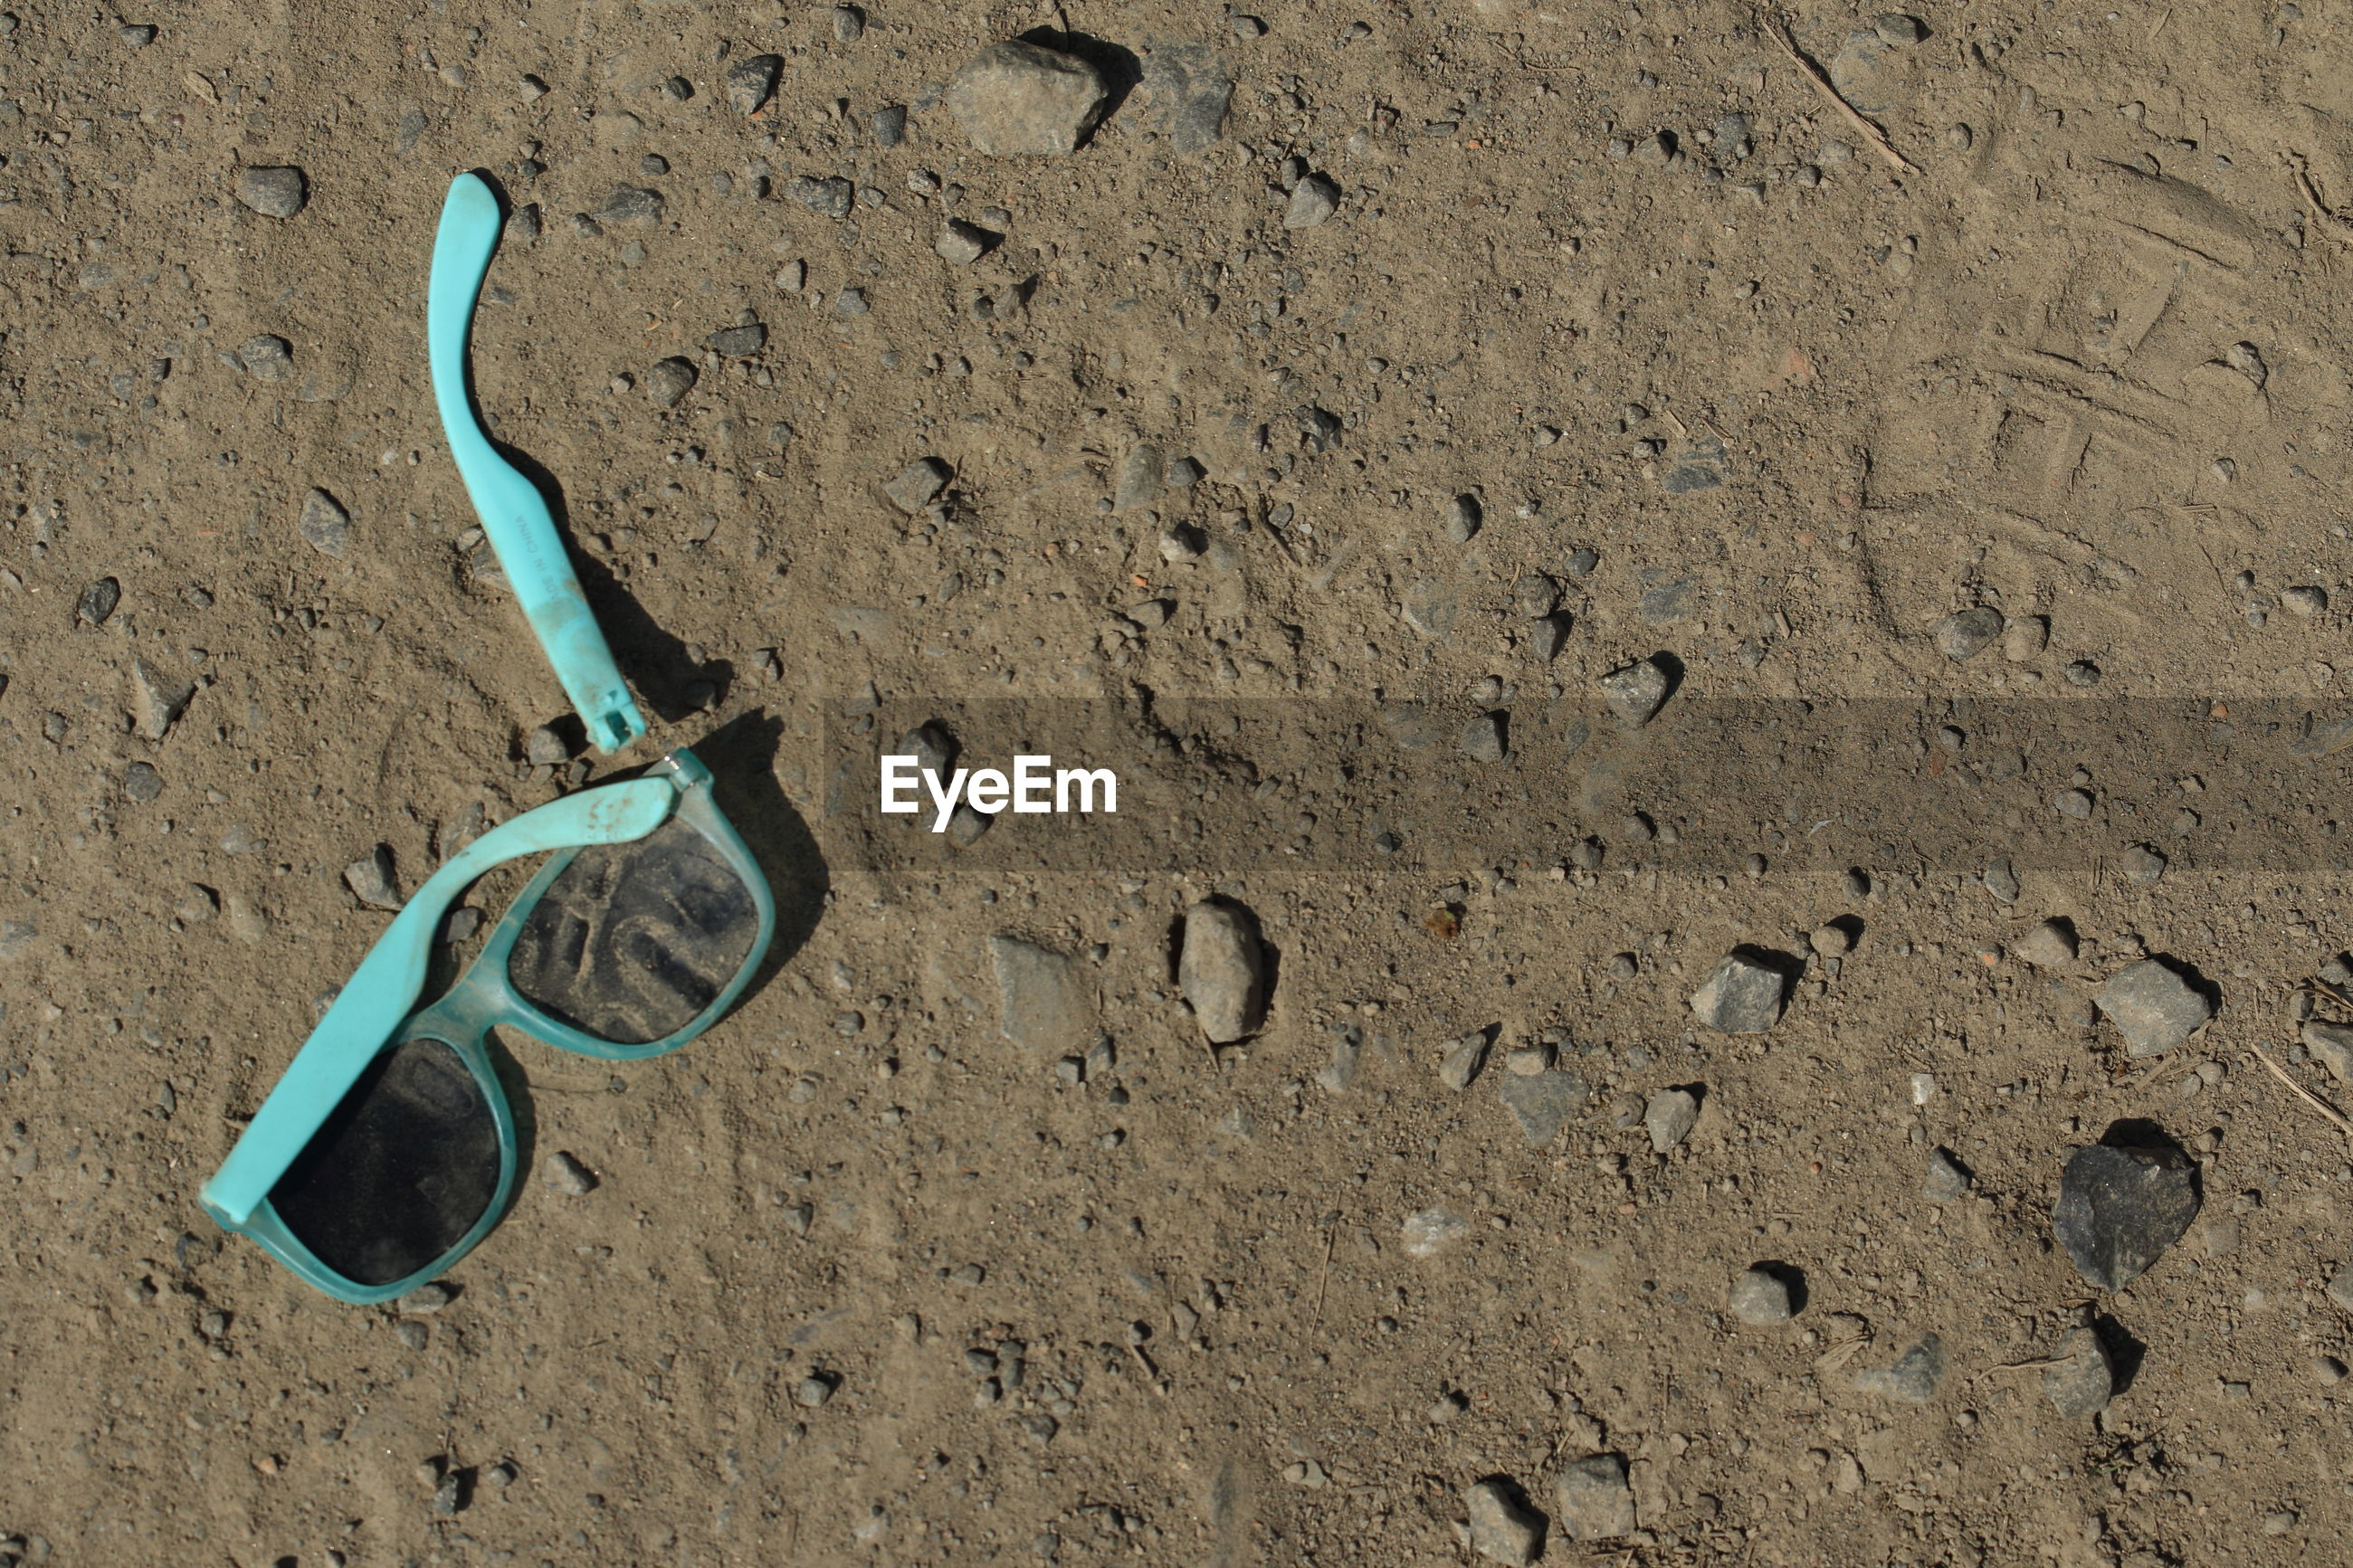 High angle view of broken sunglasses